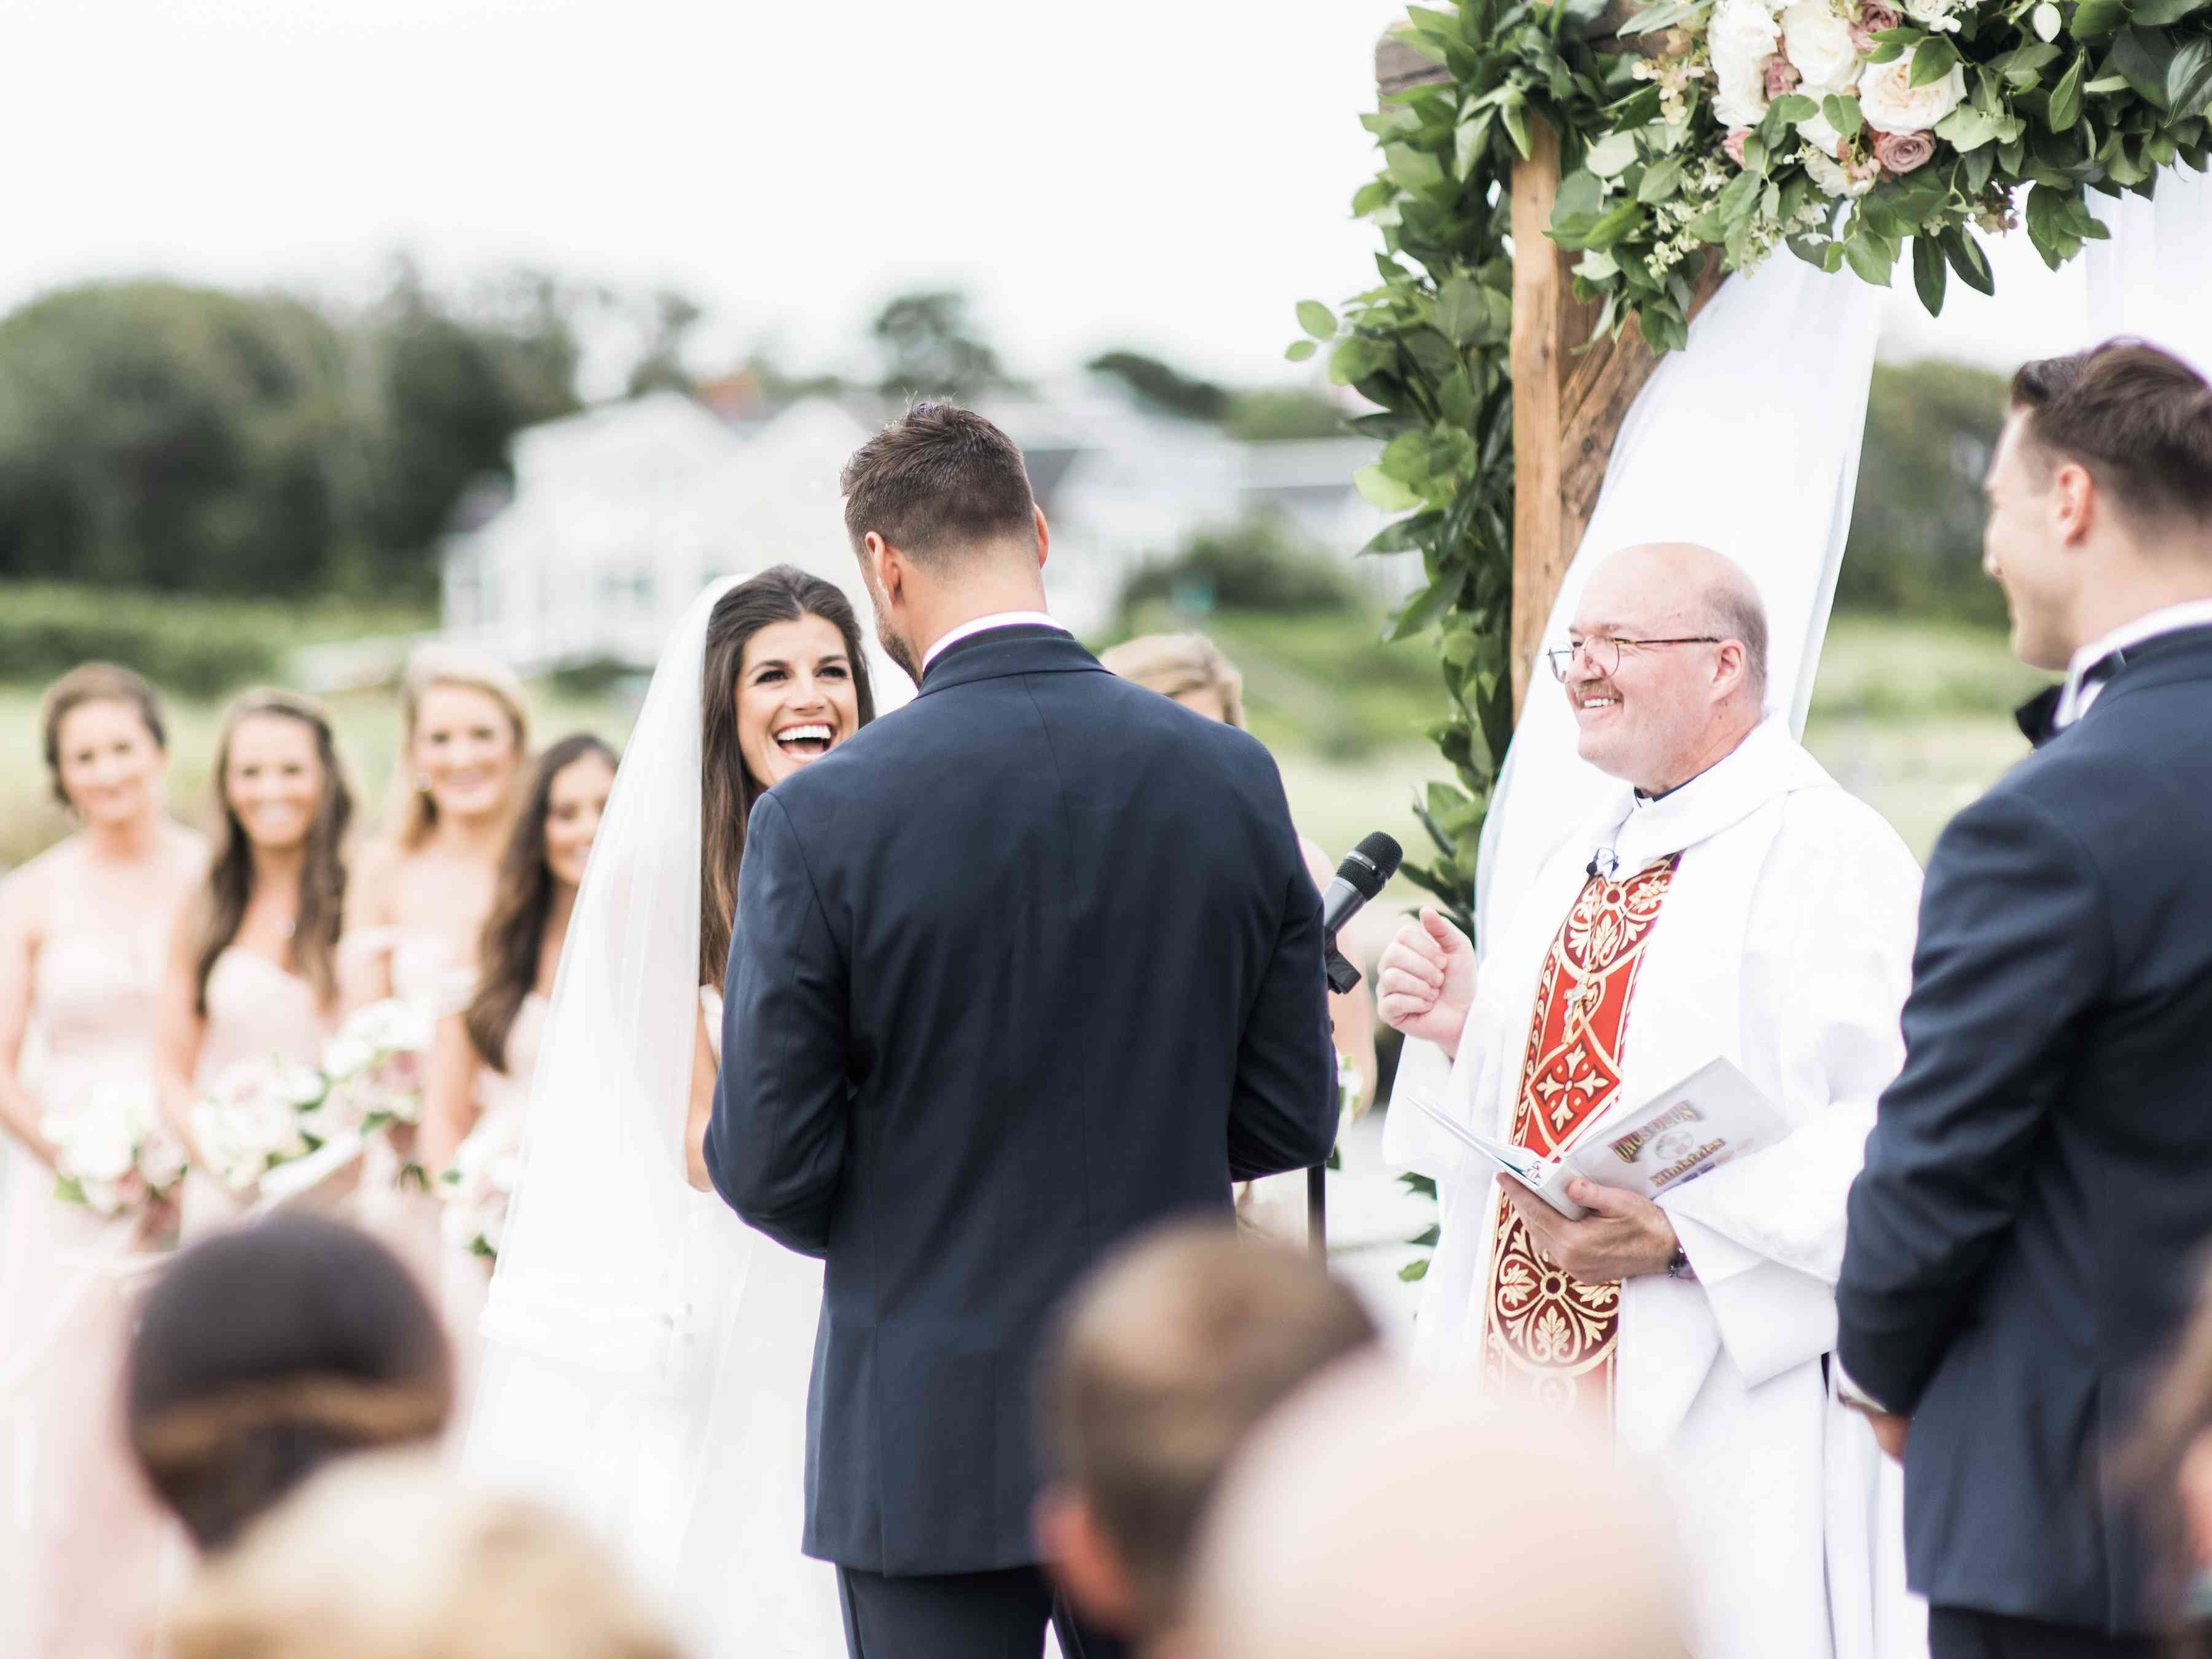 couple at altar draped in greenery and flowers